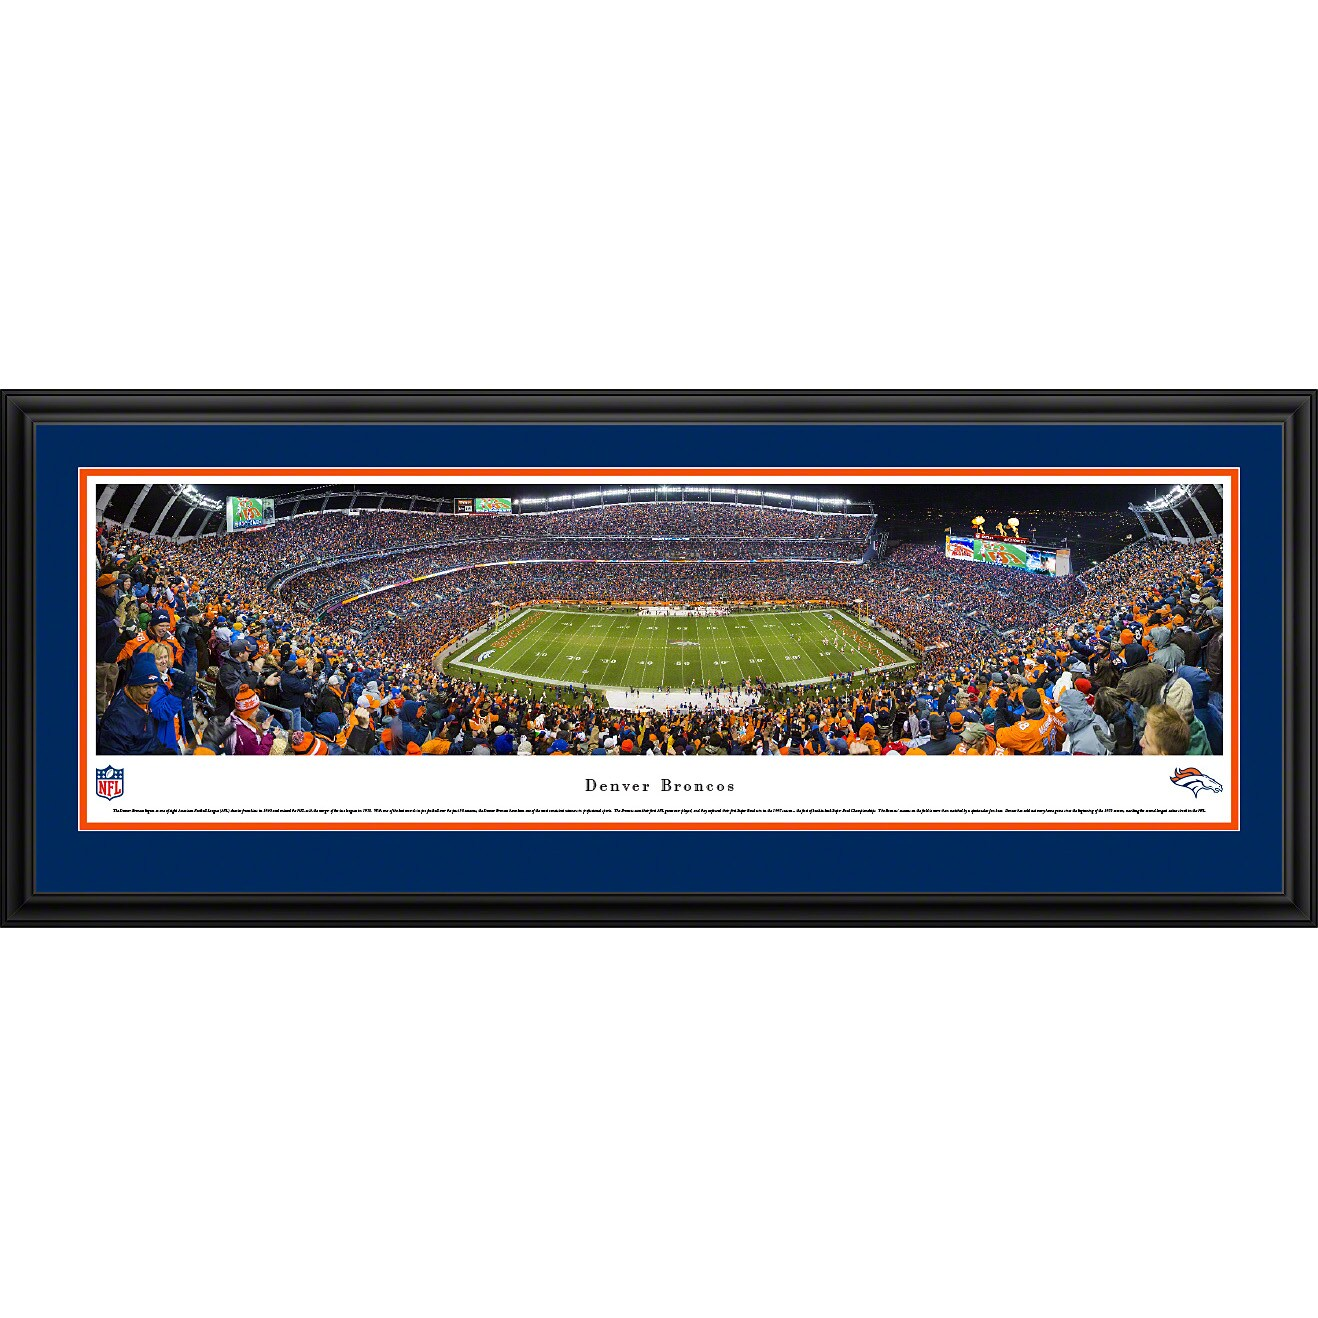 "Denver Broncos 18"" x 44"" Deluxe Frame Panoramic Photo"